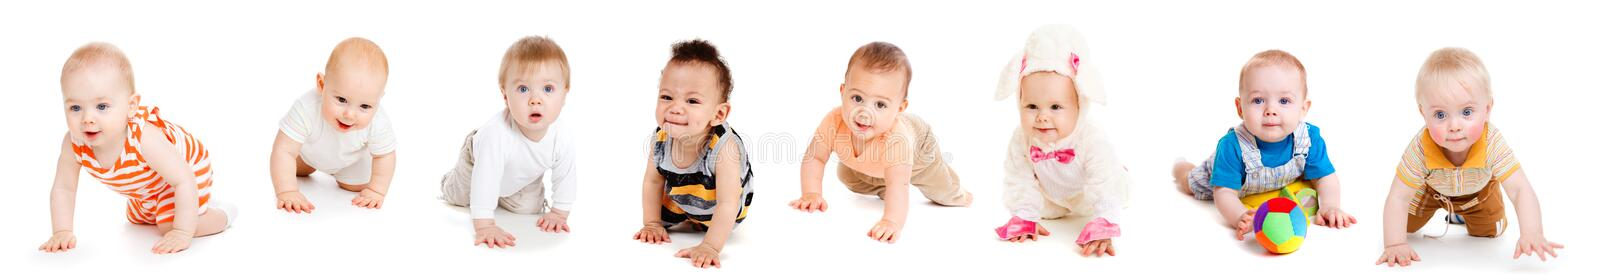 Download Babies crawling stock photo. Image of innocent, crawling - 19875034